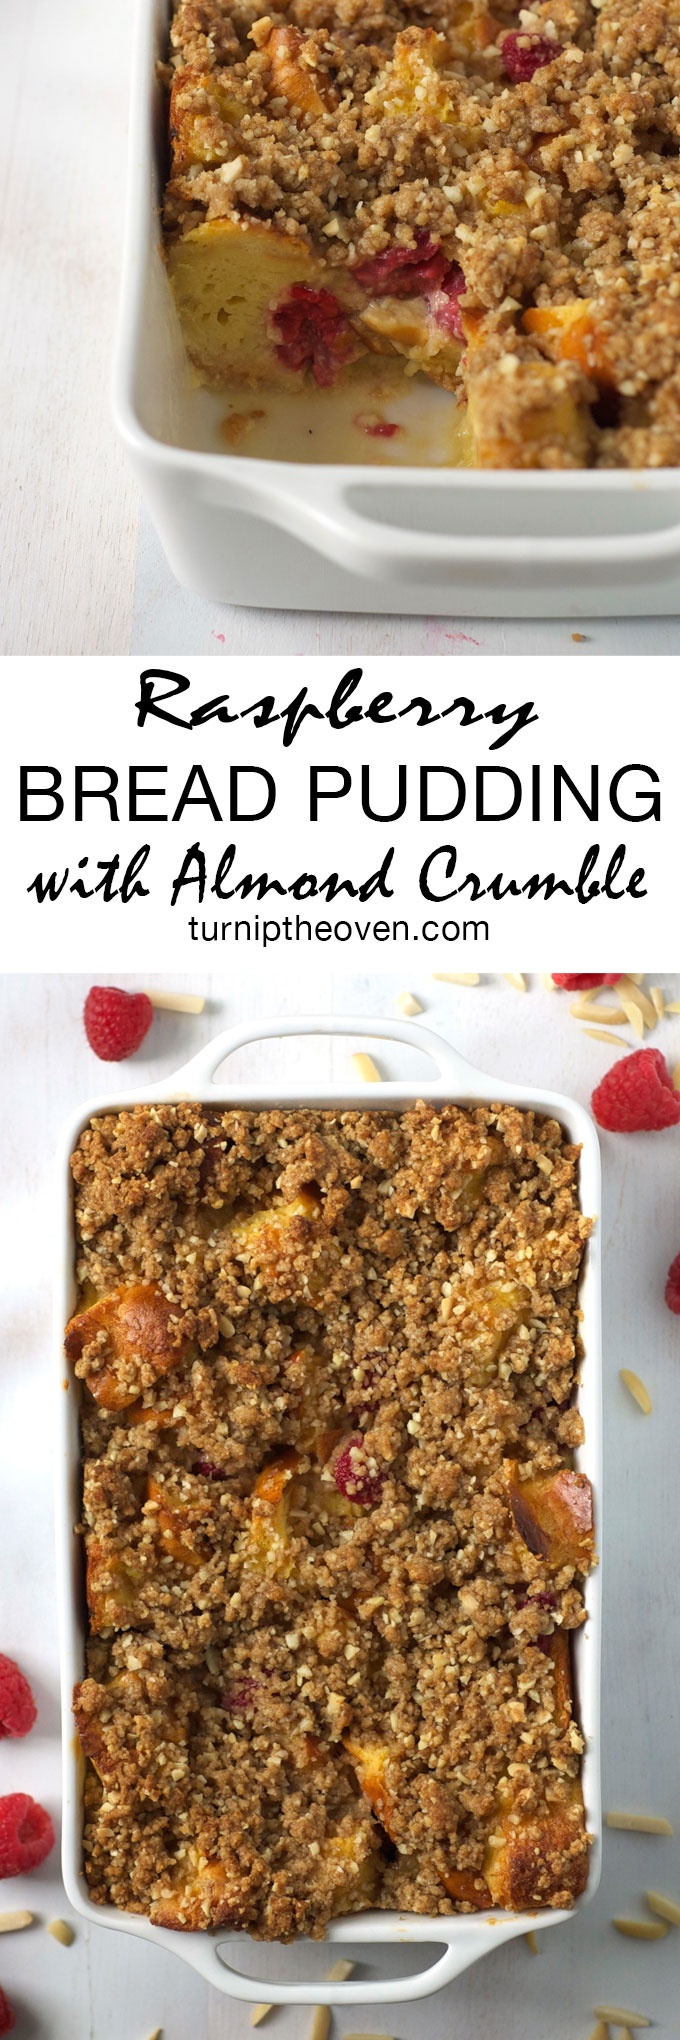 This raspberry bread pudding becomes even more indulgent when you add a buttery brown sugar and almond crumb topping. Don't forget the whipped cream!